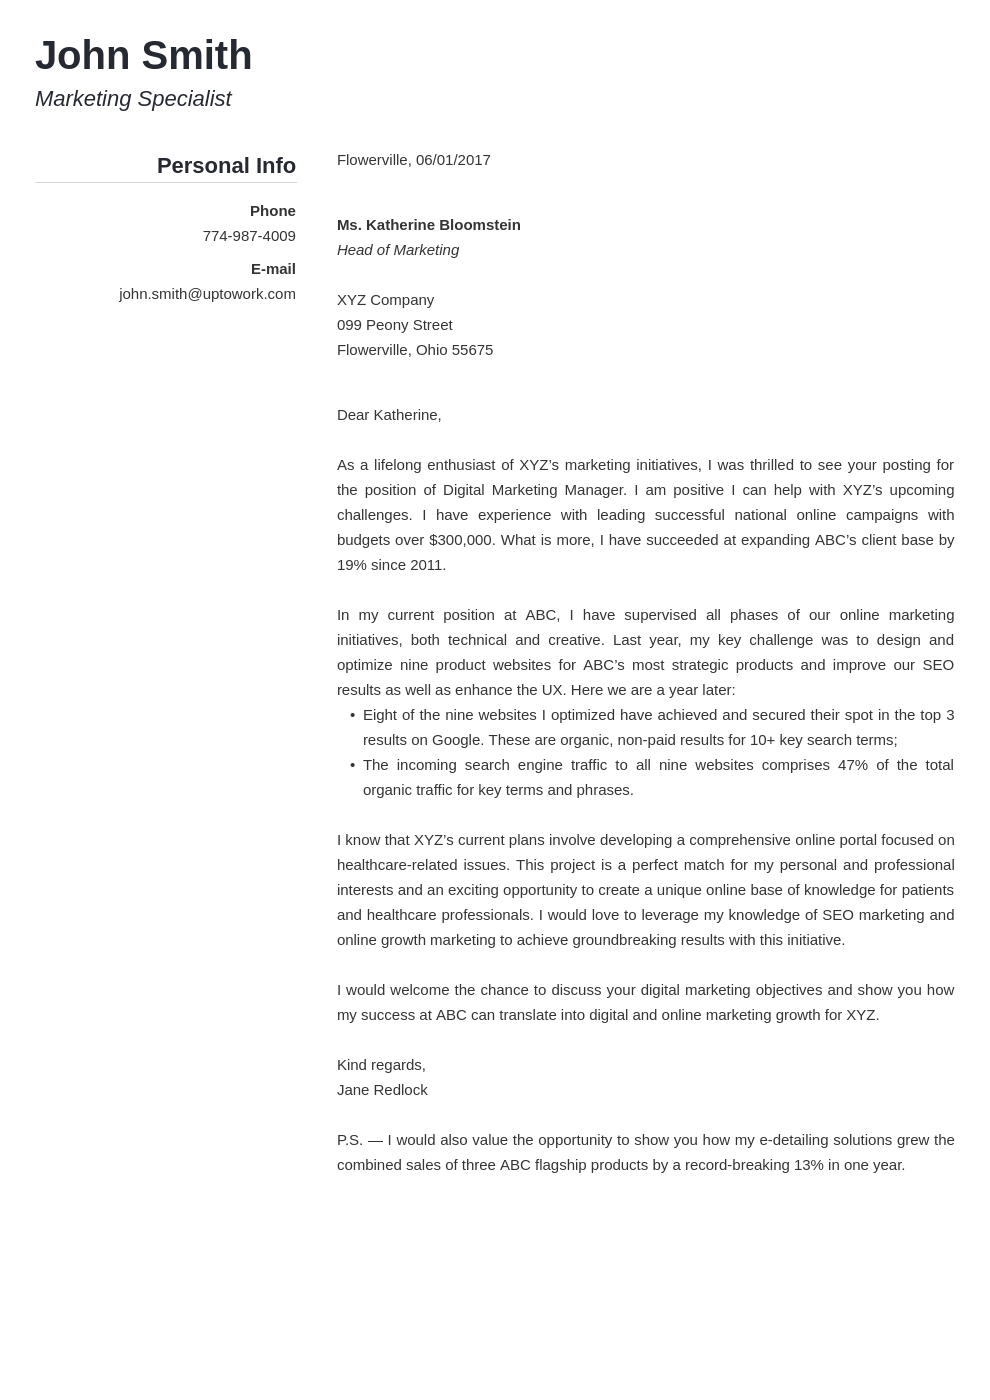 20 Cover Letter Templates Fill Them In And Download In 5